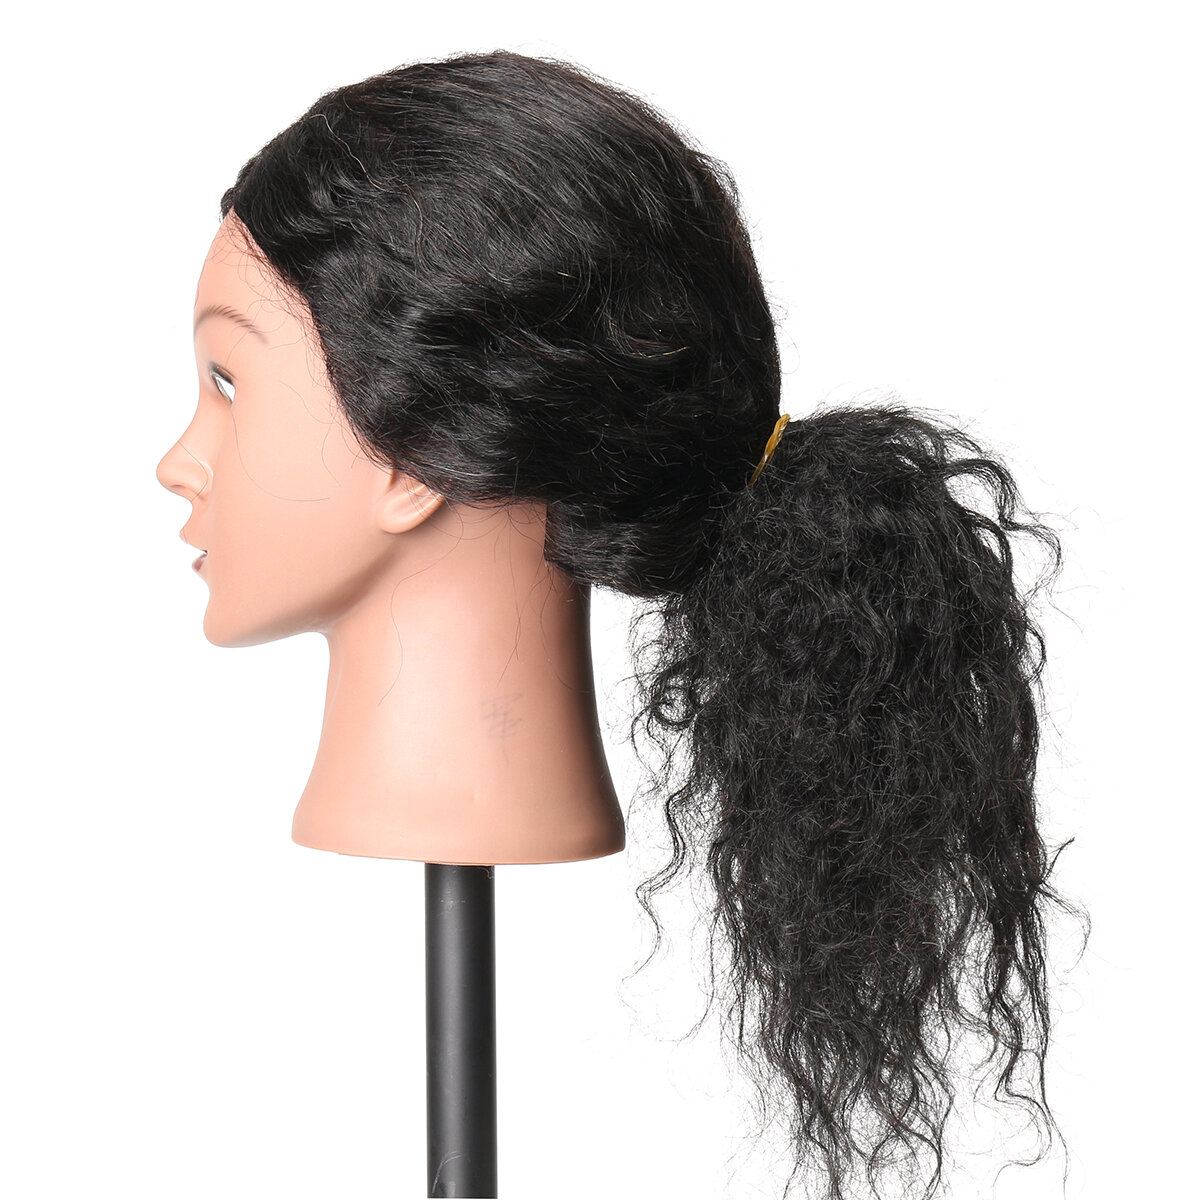 Female Plastic Mannequin Head Wig Hair Display Model Stand 3 Colors - 7